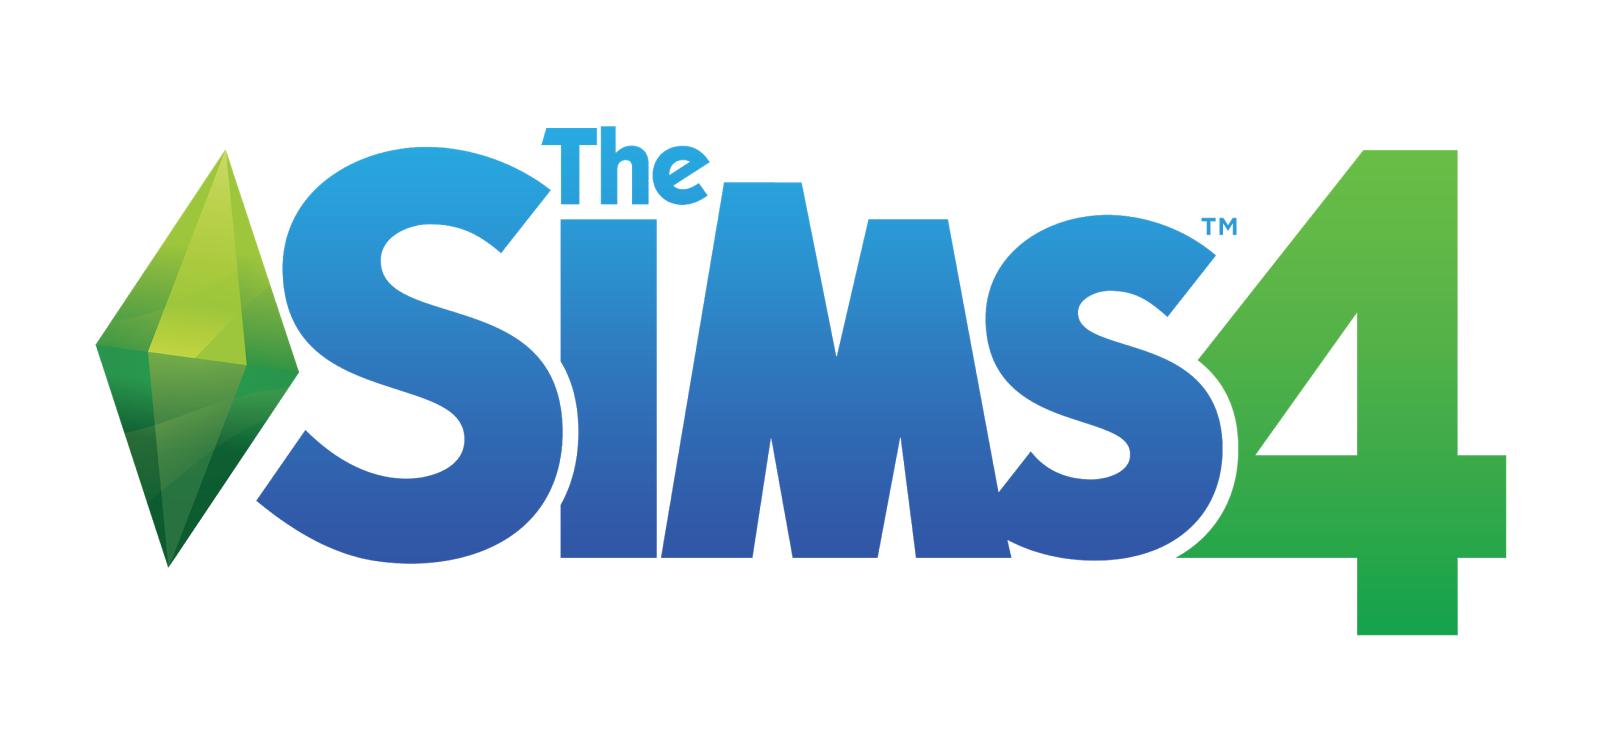 The Sims 4 Review on PC